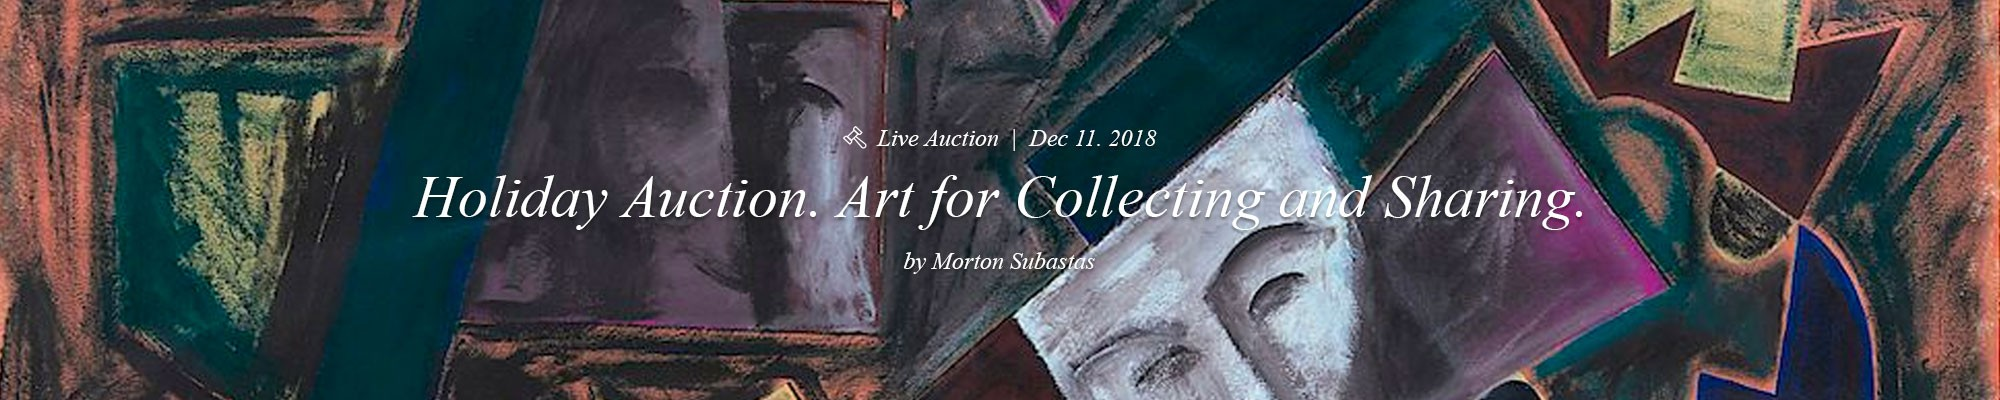 holiday-auction-art-for-collecting-and-sharing-morton-subastas